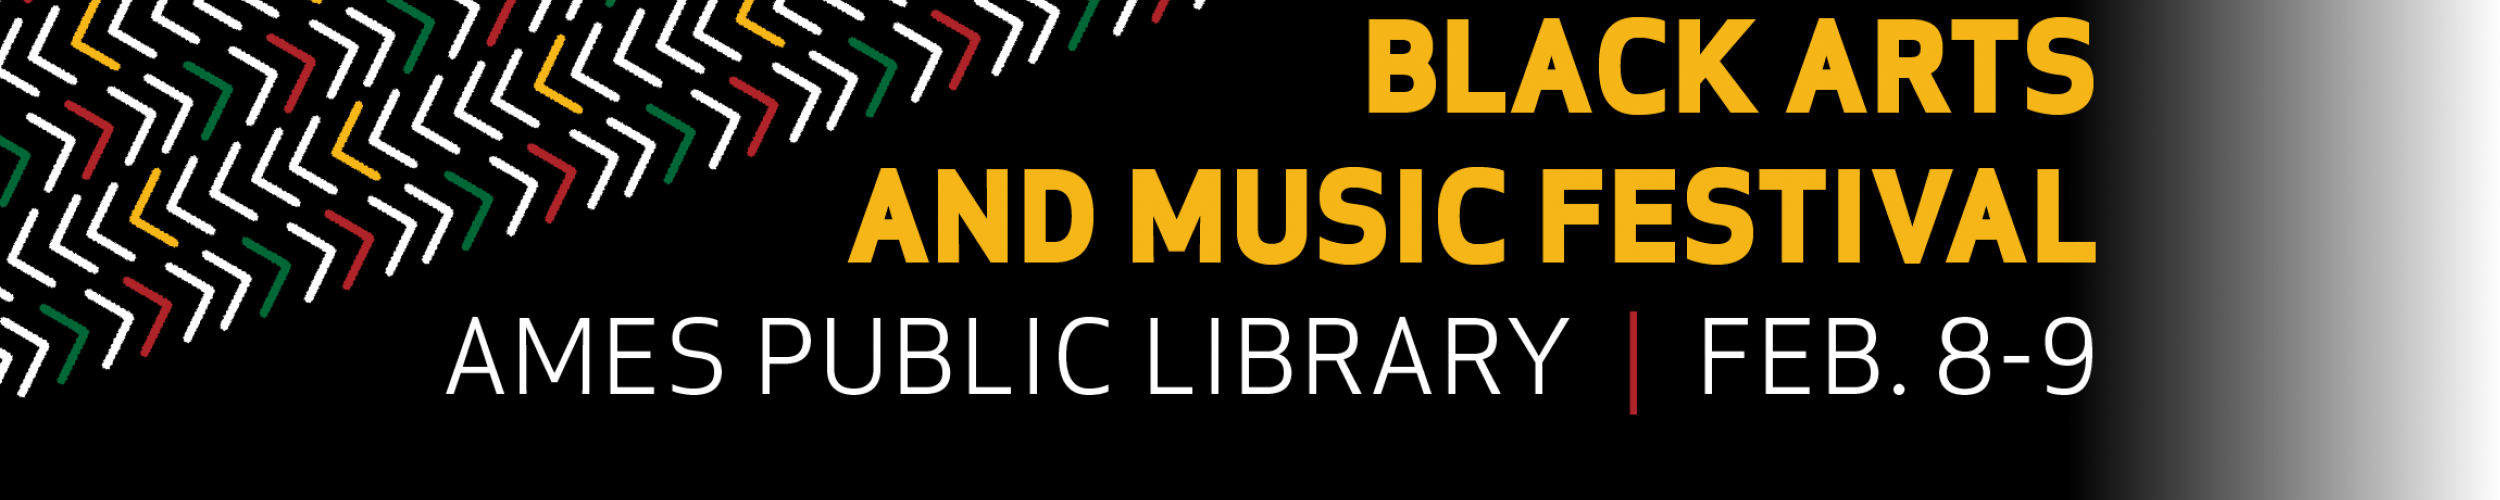 Black Arts and Music Festival: Feb. 8-9